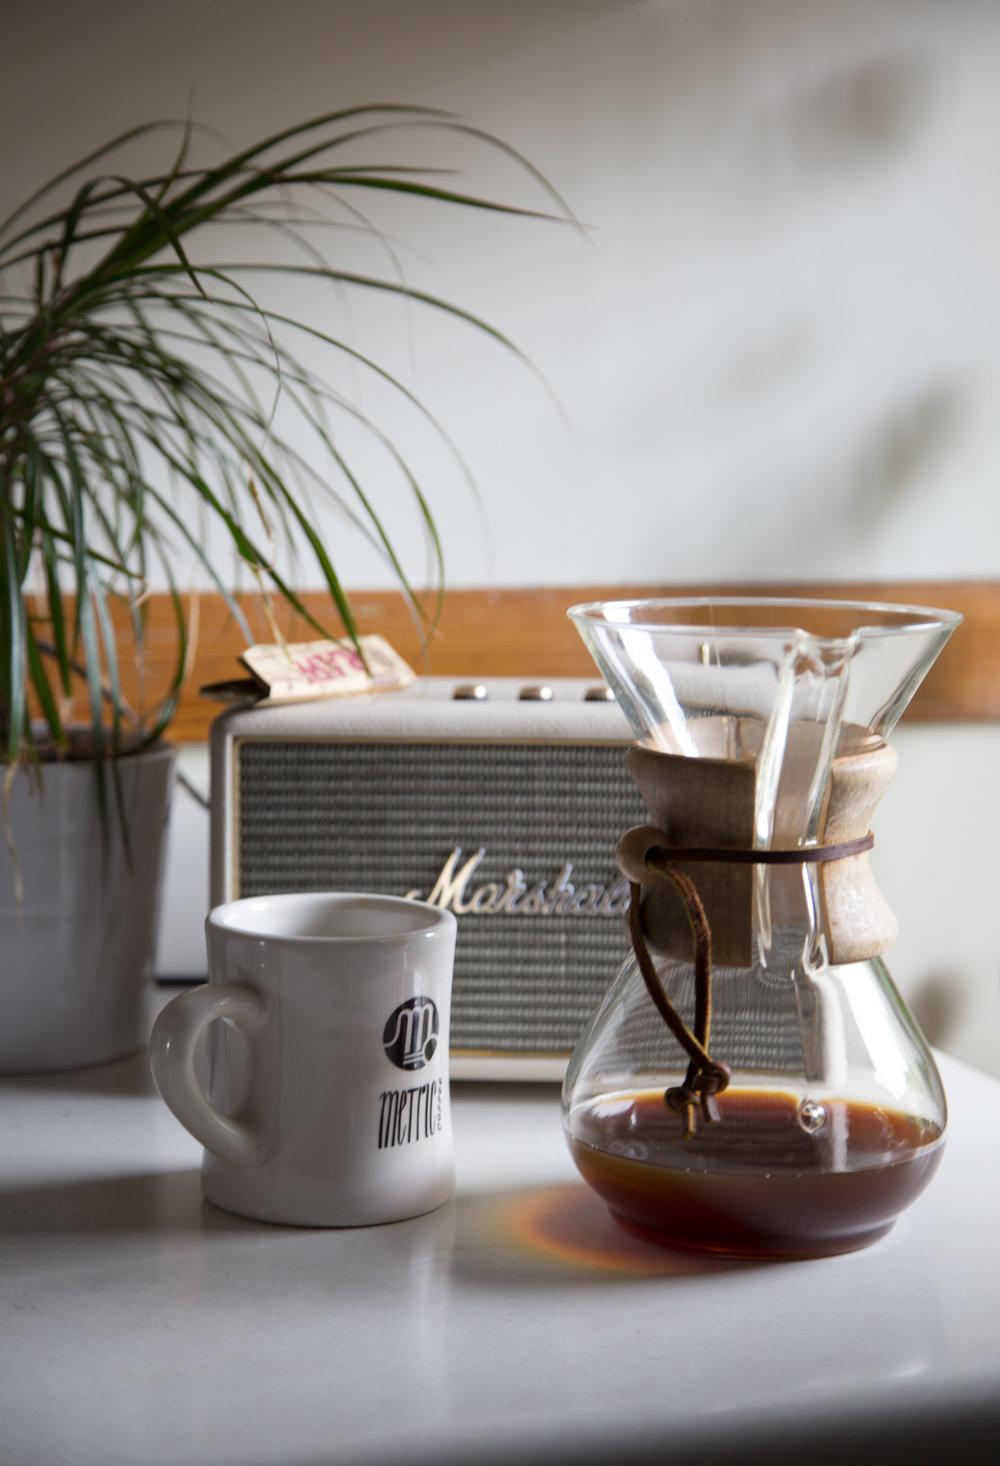 Lifestyle photography for Metric Coffee